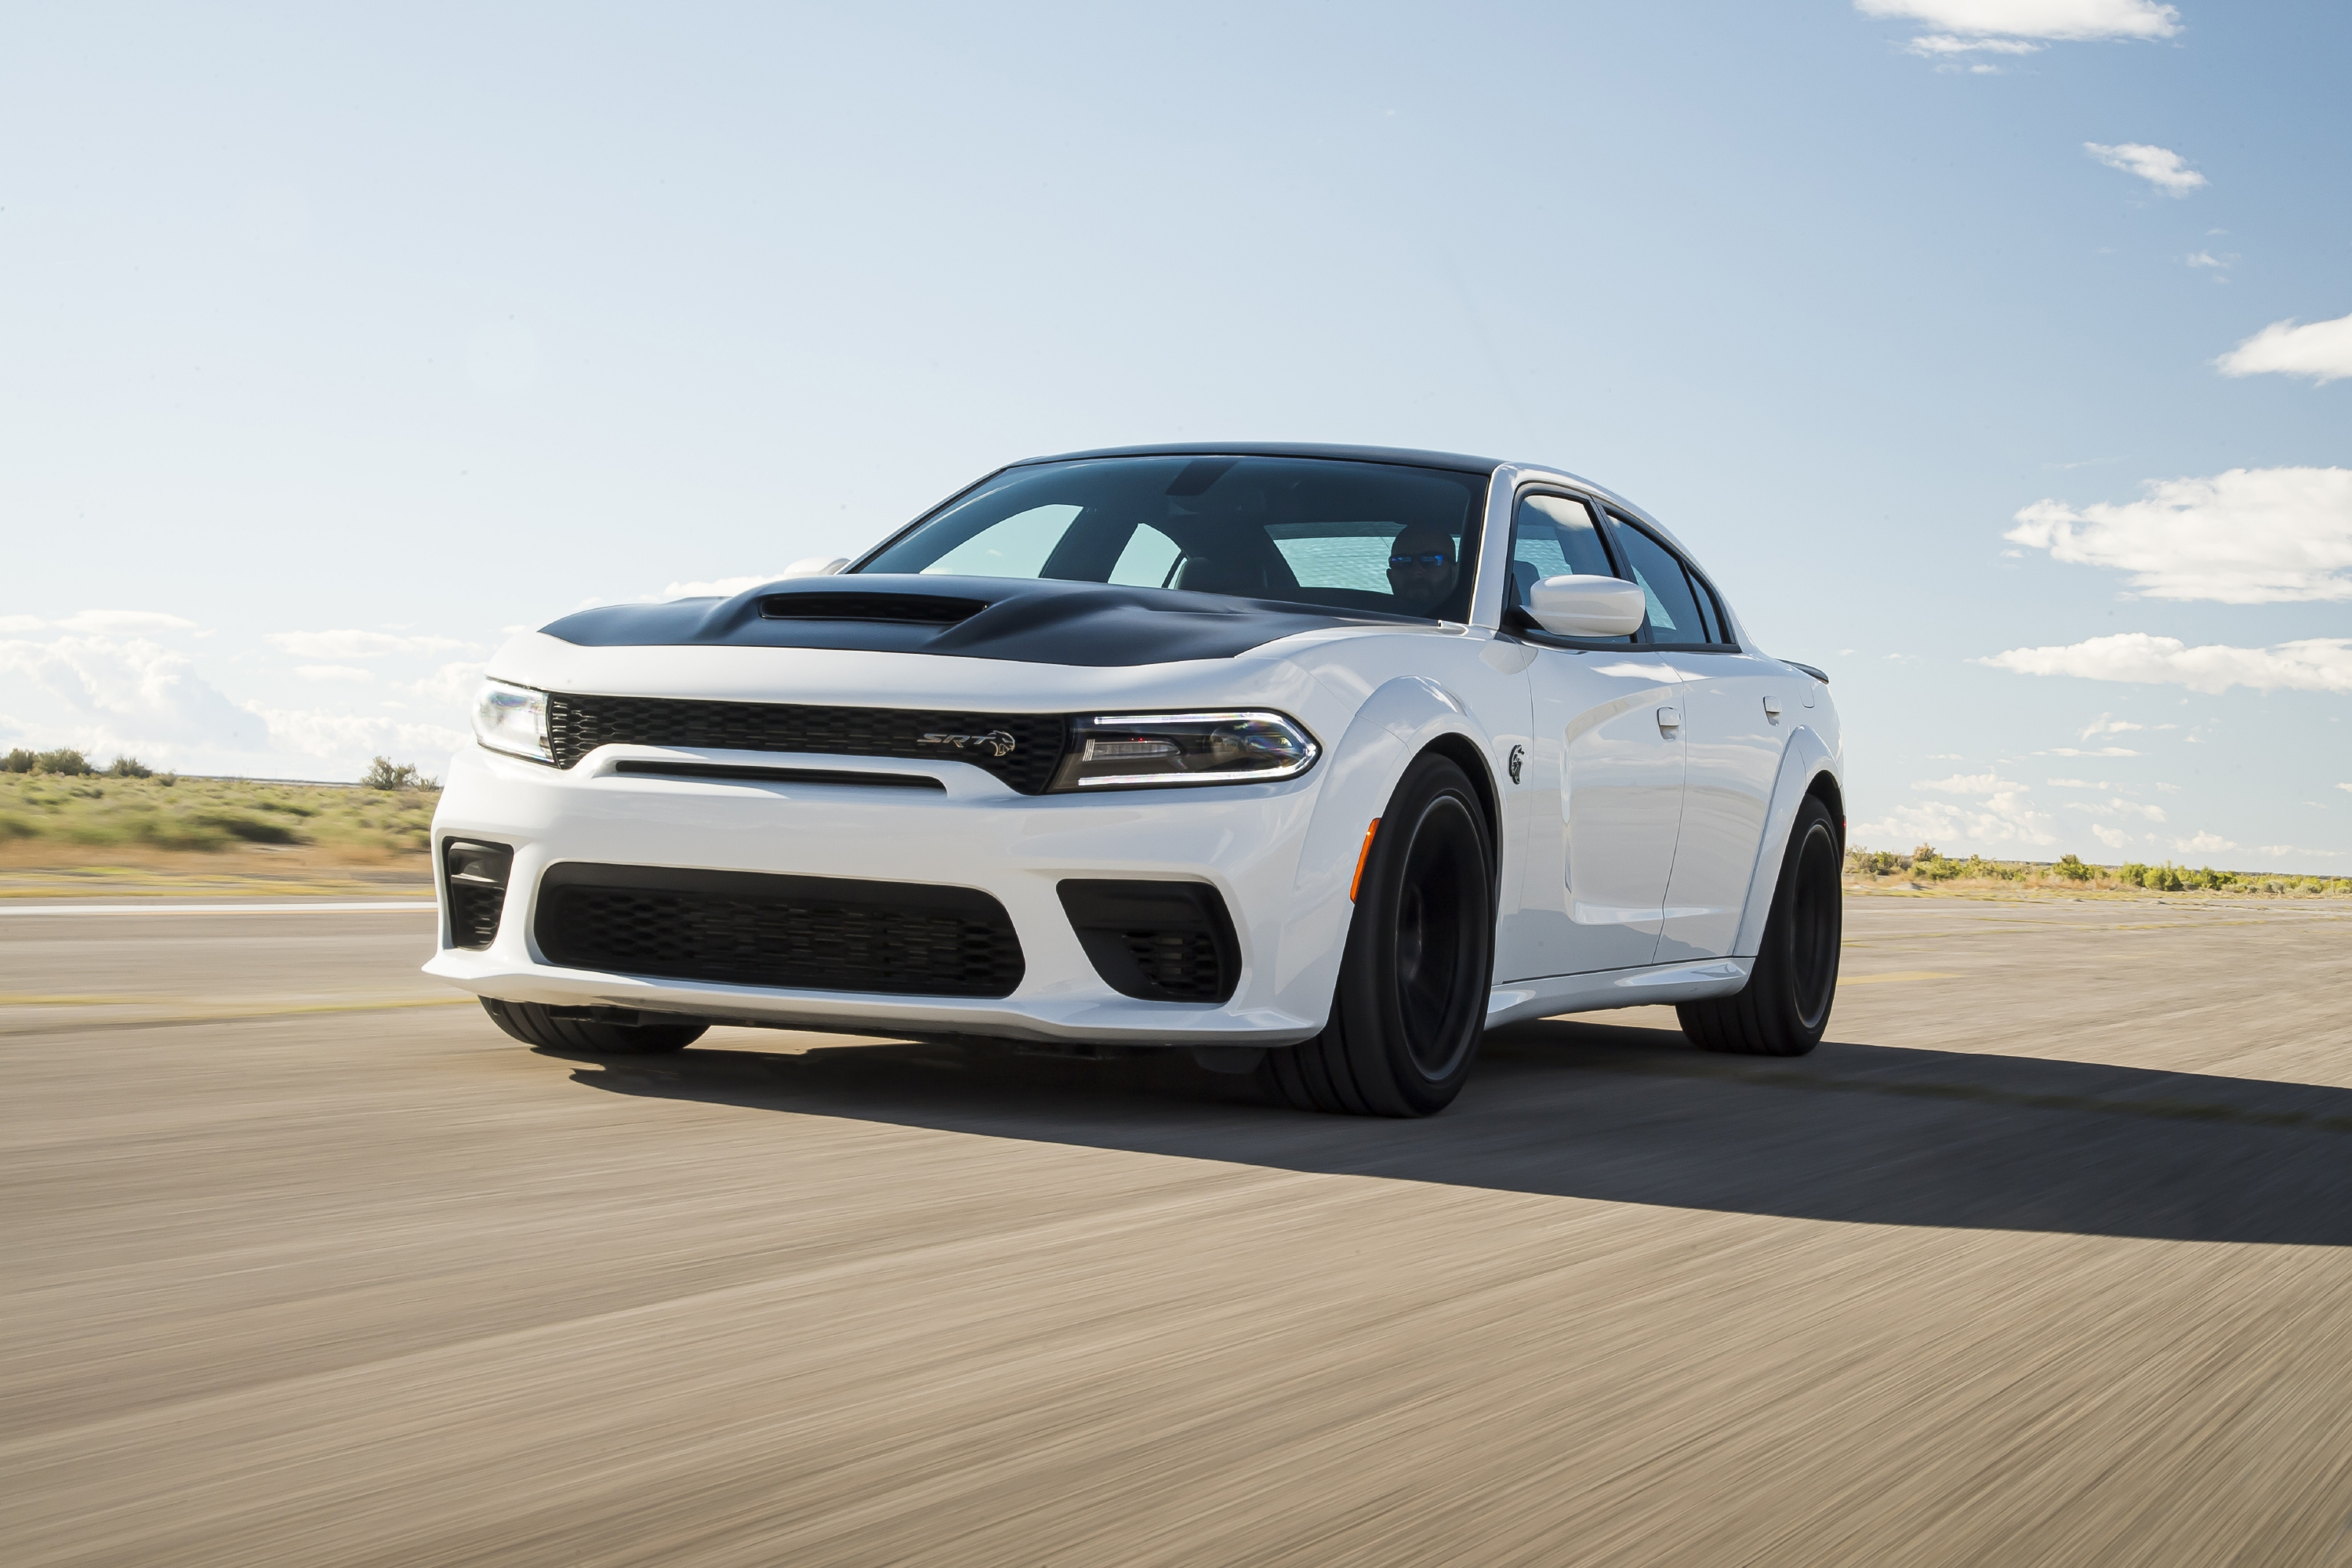 2021 Dodge Charger Srt Hellcat Redeye Is Both Most Powerful And Fastest Sedan Out There